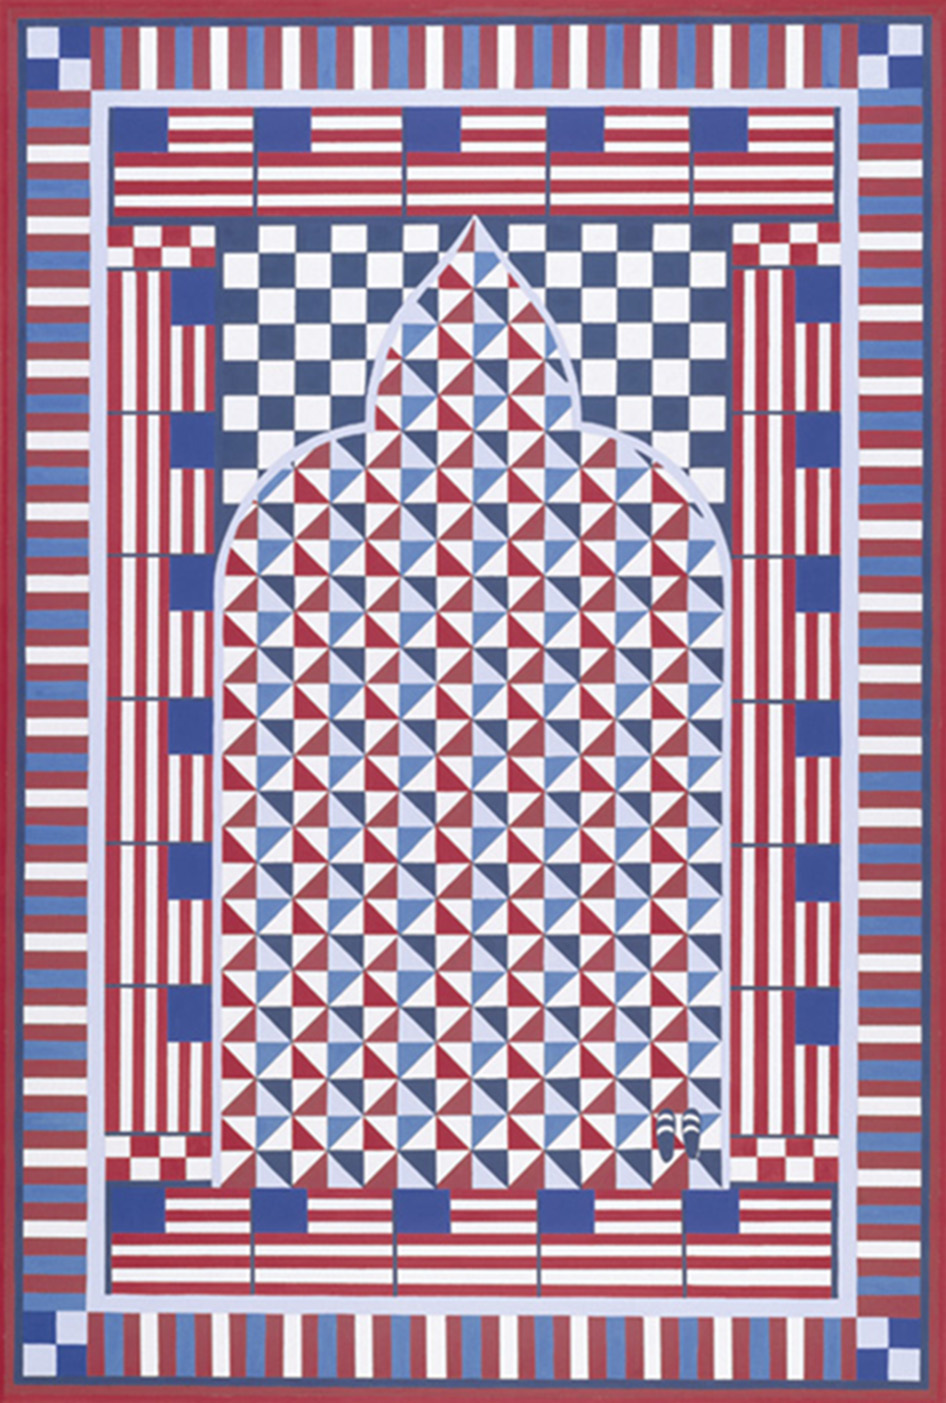 Prayer Rug for America-Helen Zughaib.jpg